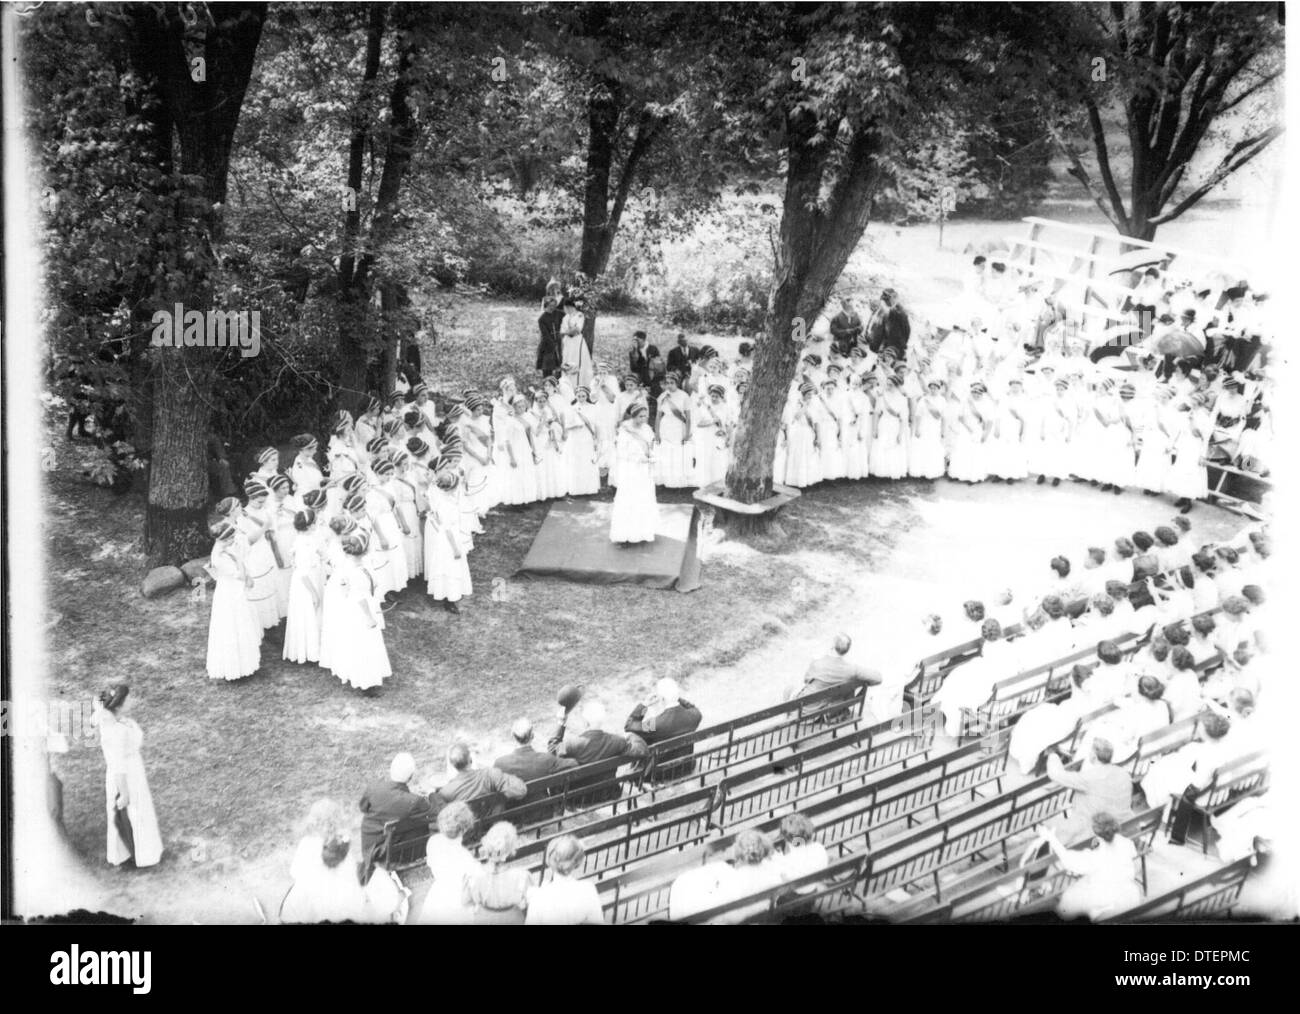 Western College on Tree Day 1911 - Stock Image